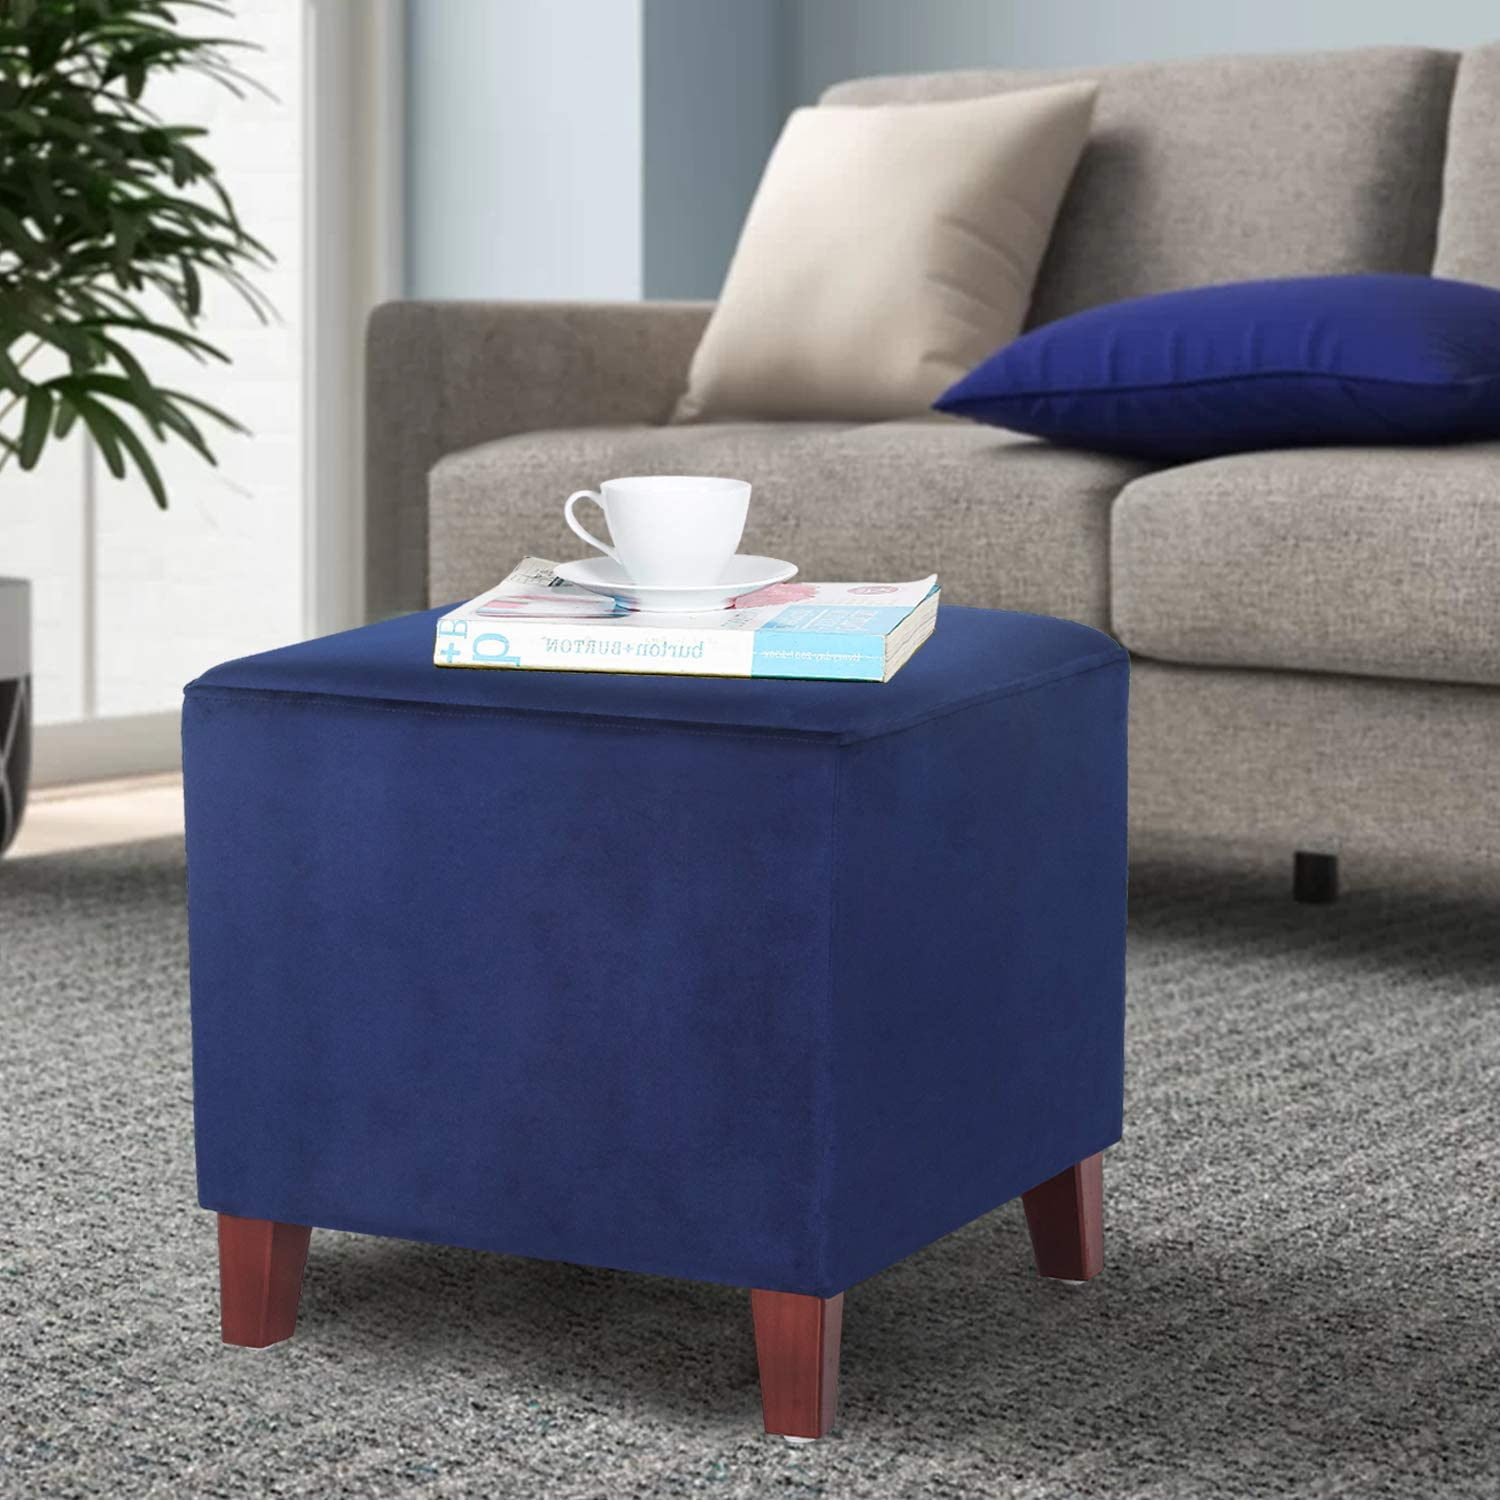 Homebeez Square Ottoman Footrest Stool, Small Fabric Bench Shoe Dressing Seat, Accent Furniture for Living Room (Dark Blue)